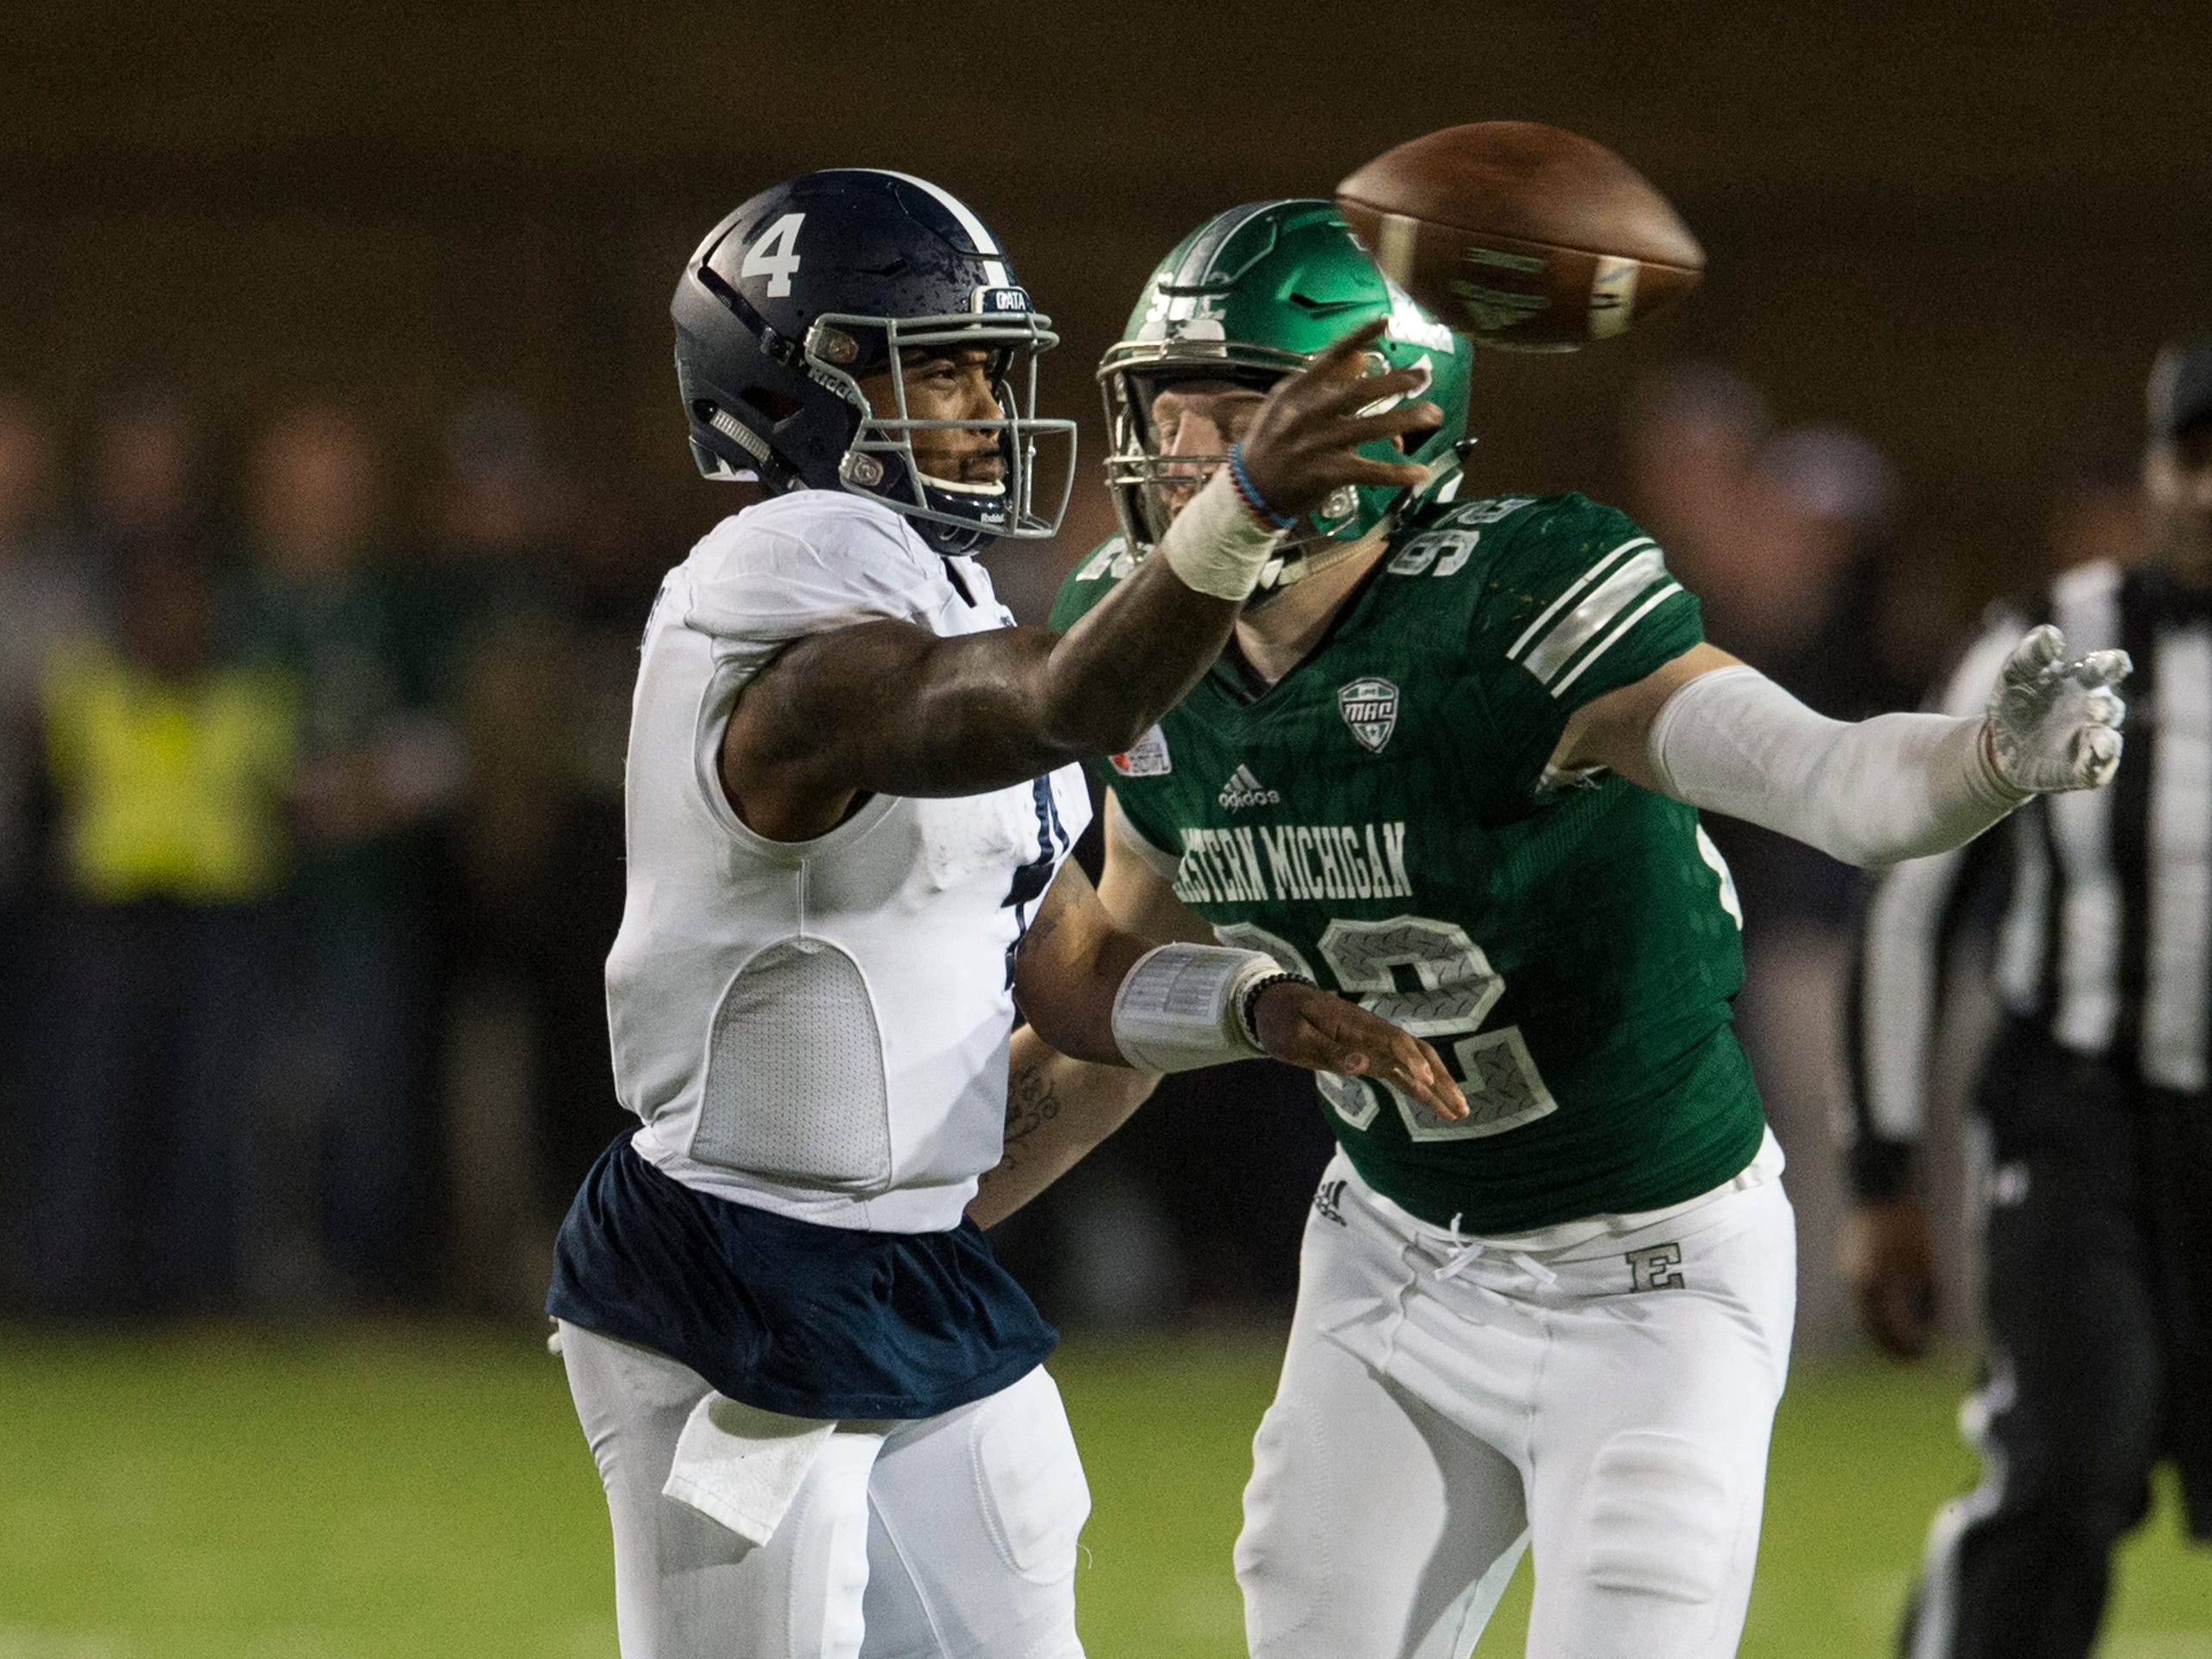 Georgia Southern quarterback Shai Werts (4) throws the ball before he is it by Eastern Michigan defensive lineman Maxx Crosby (92) during the Camellia Bowl at Cramton Bowl in Montgomery, Ala., on Saturday, Dec. 15, 2018. Georgia Southern defeated Eastern Michigan 23-21.